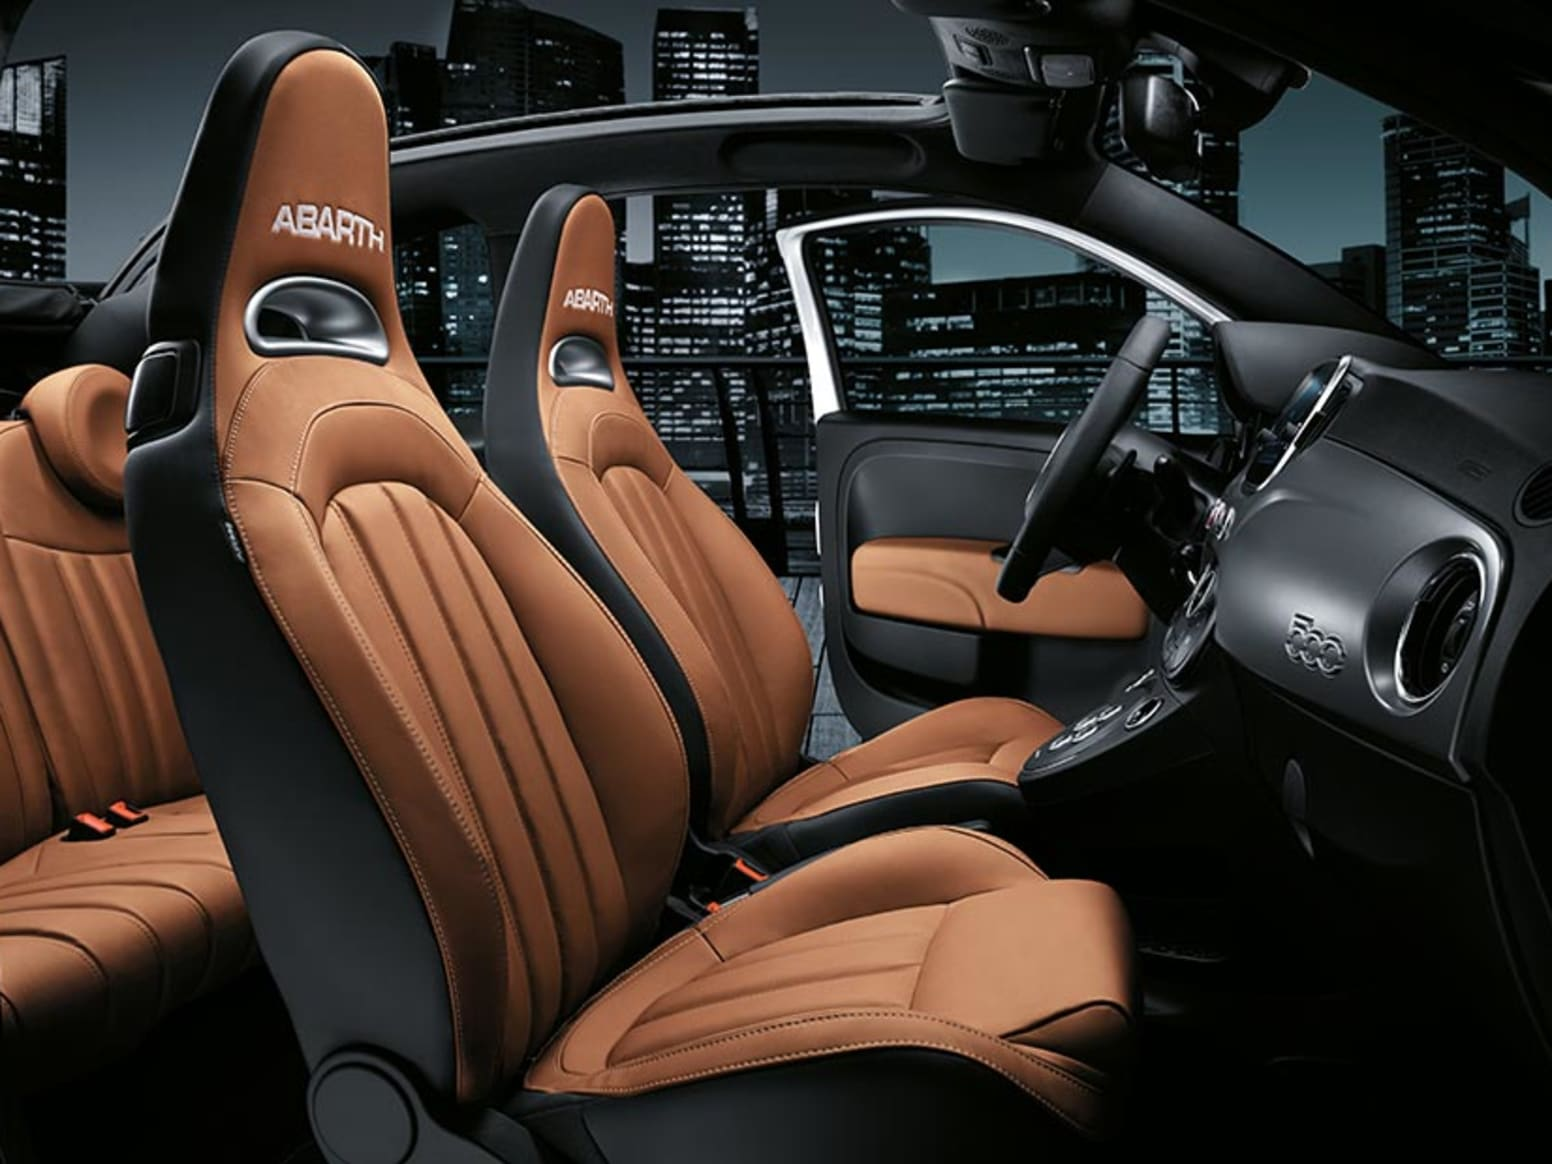 Abarth 595 Turismo Interior Seats